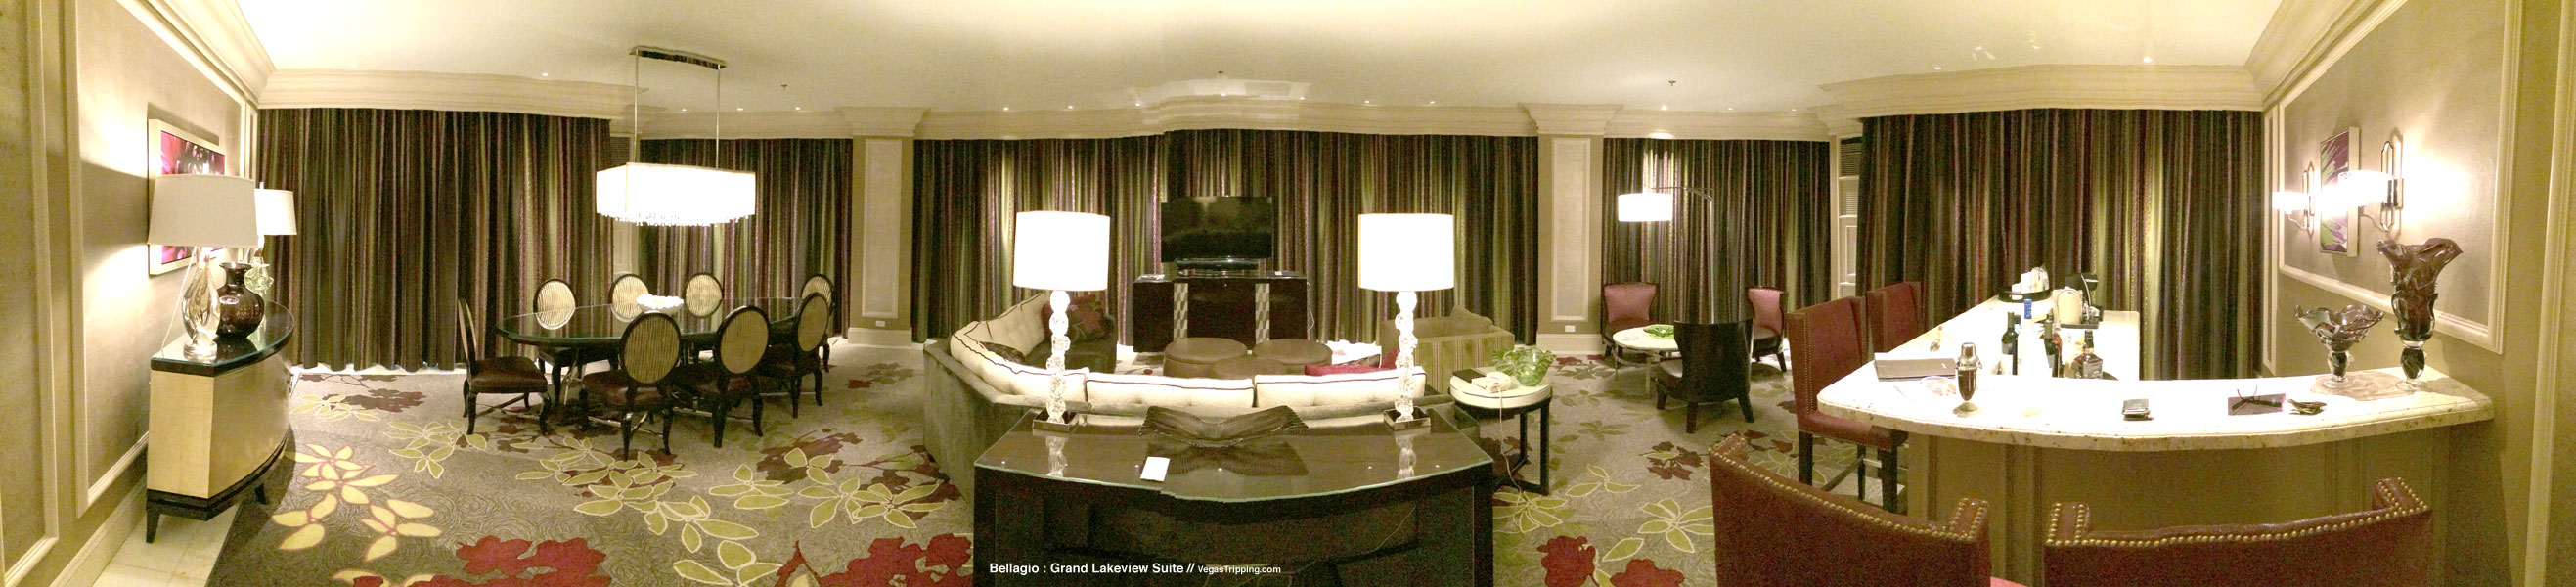 Bellagio Grand Lakeview Suite Review Panorama 1